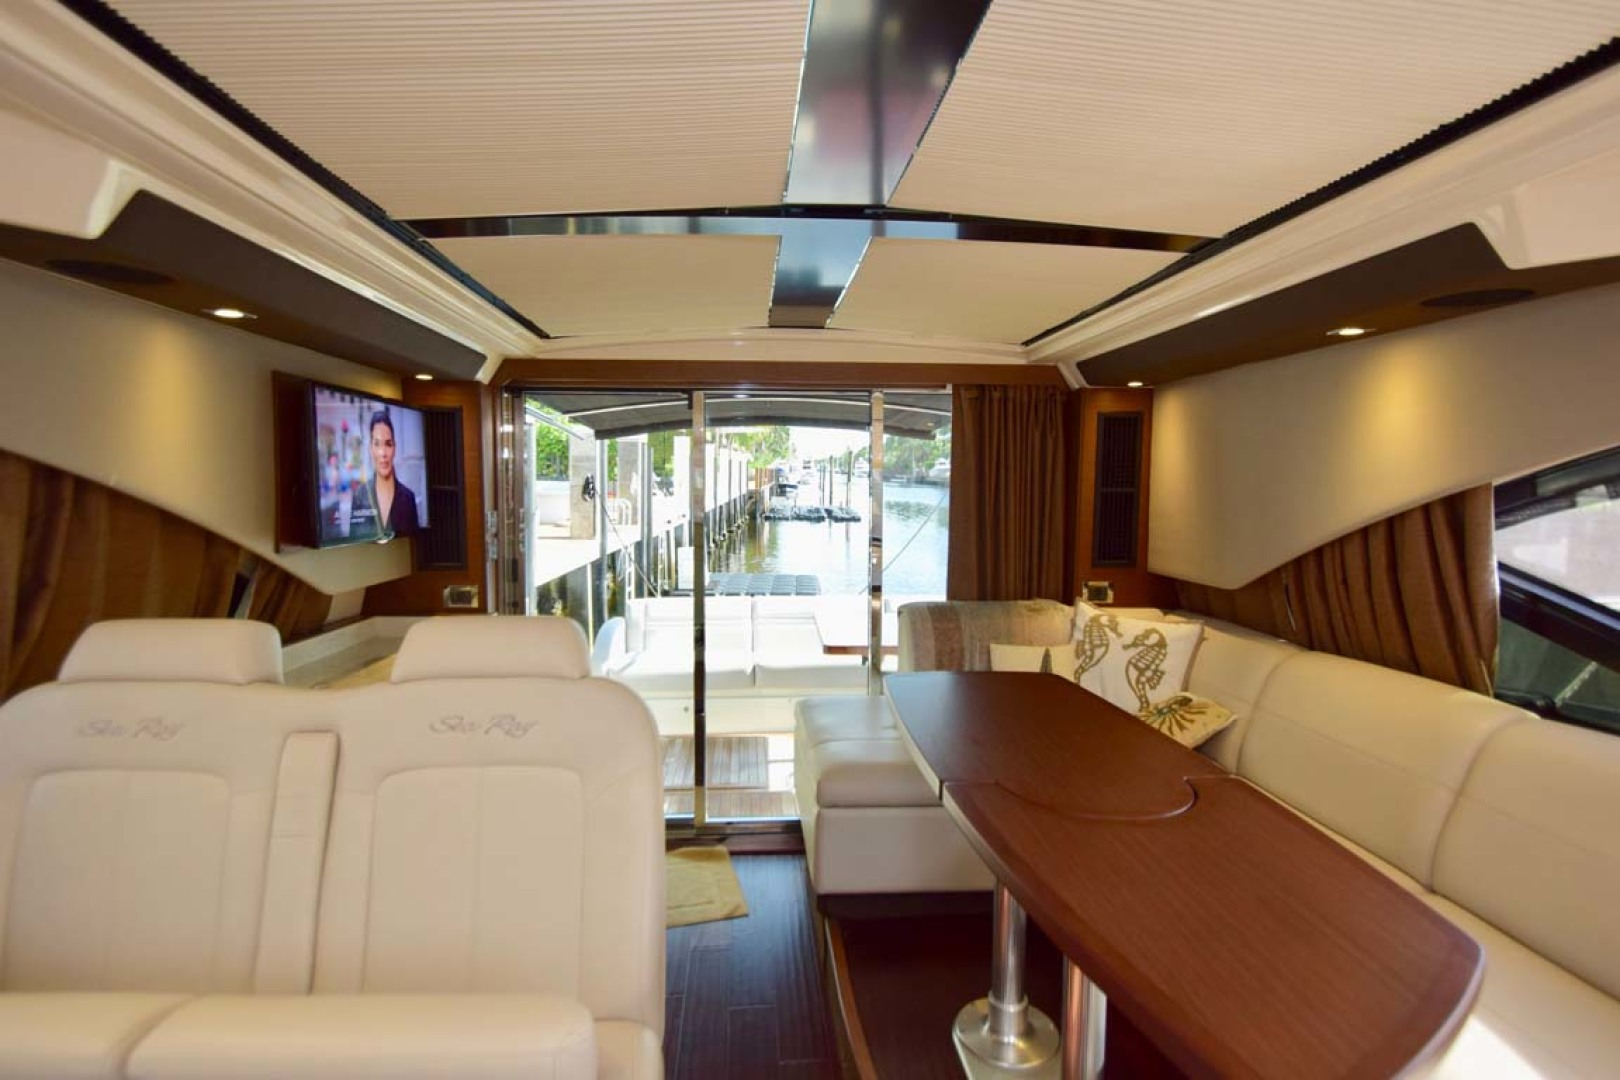 Sea Ray-510 Sundancer 2015 -Ft Lauderdale-Florida-United States-Salon View To Aft Deck With Sun Shades Closed-1189923 | Thumbnail